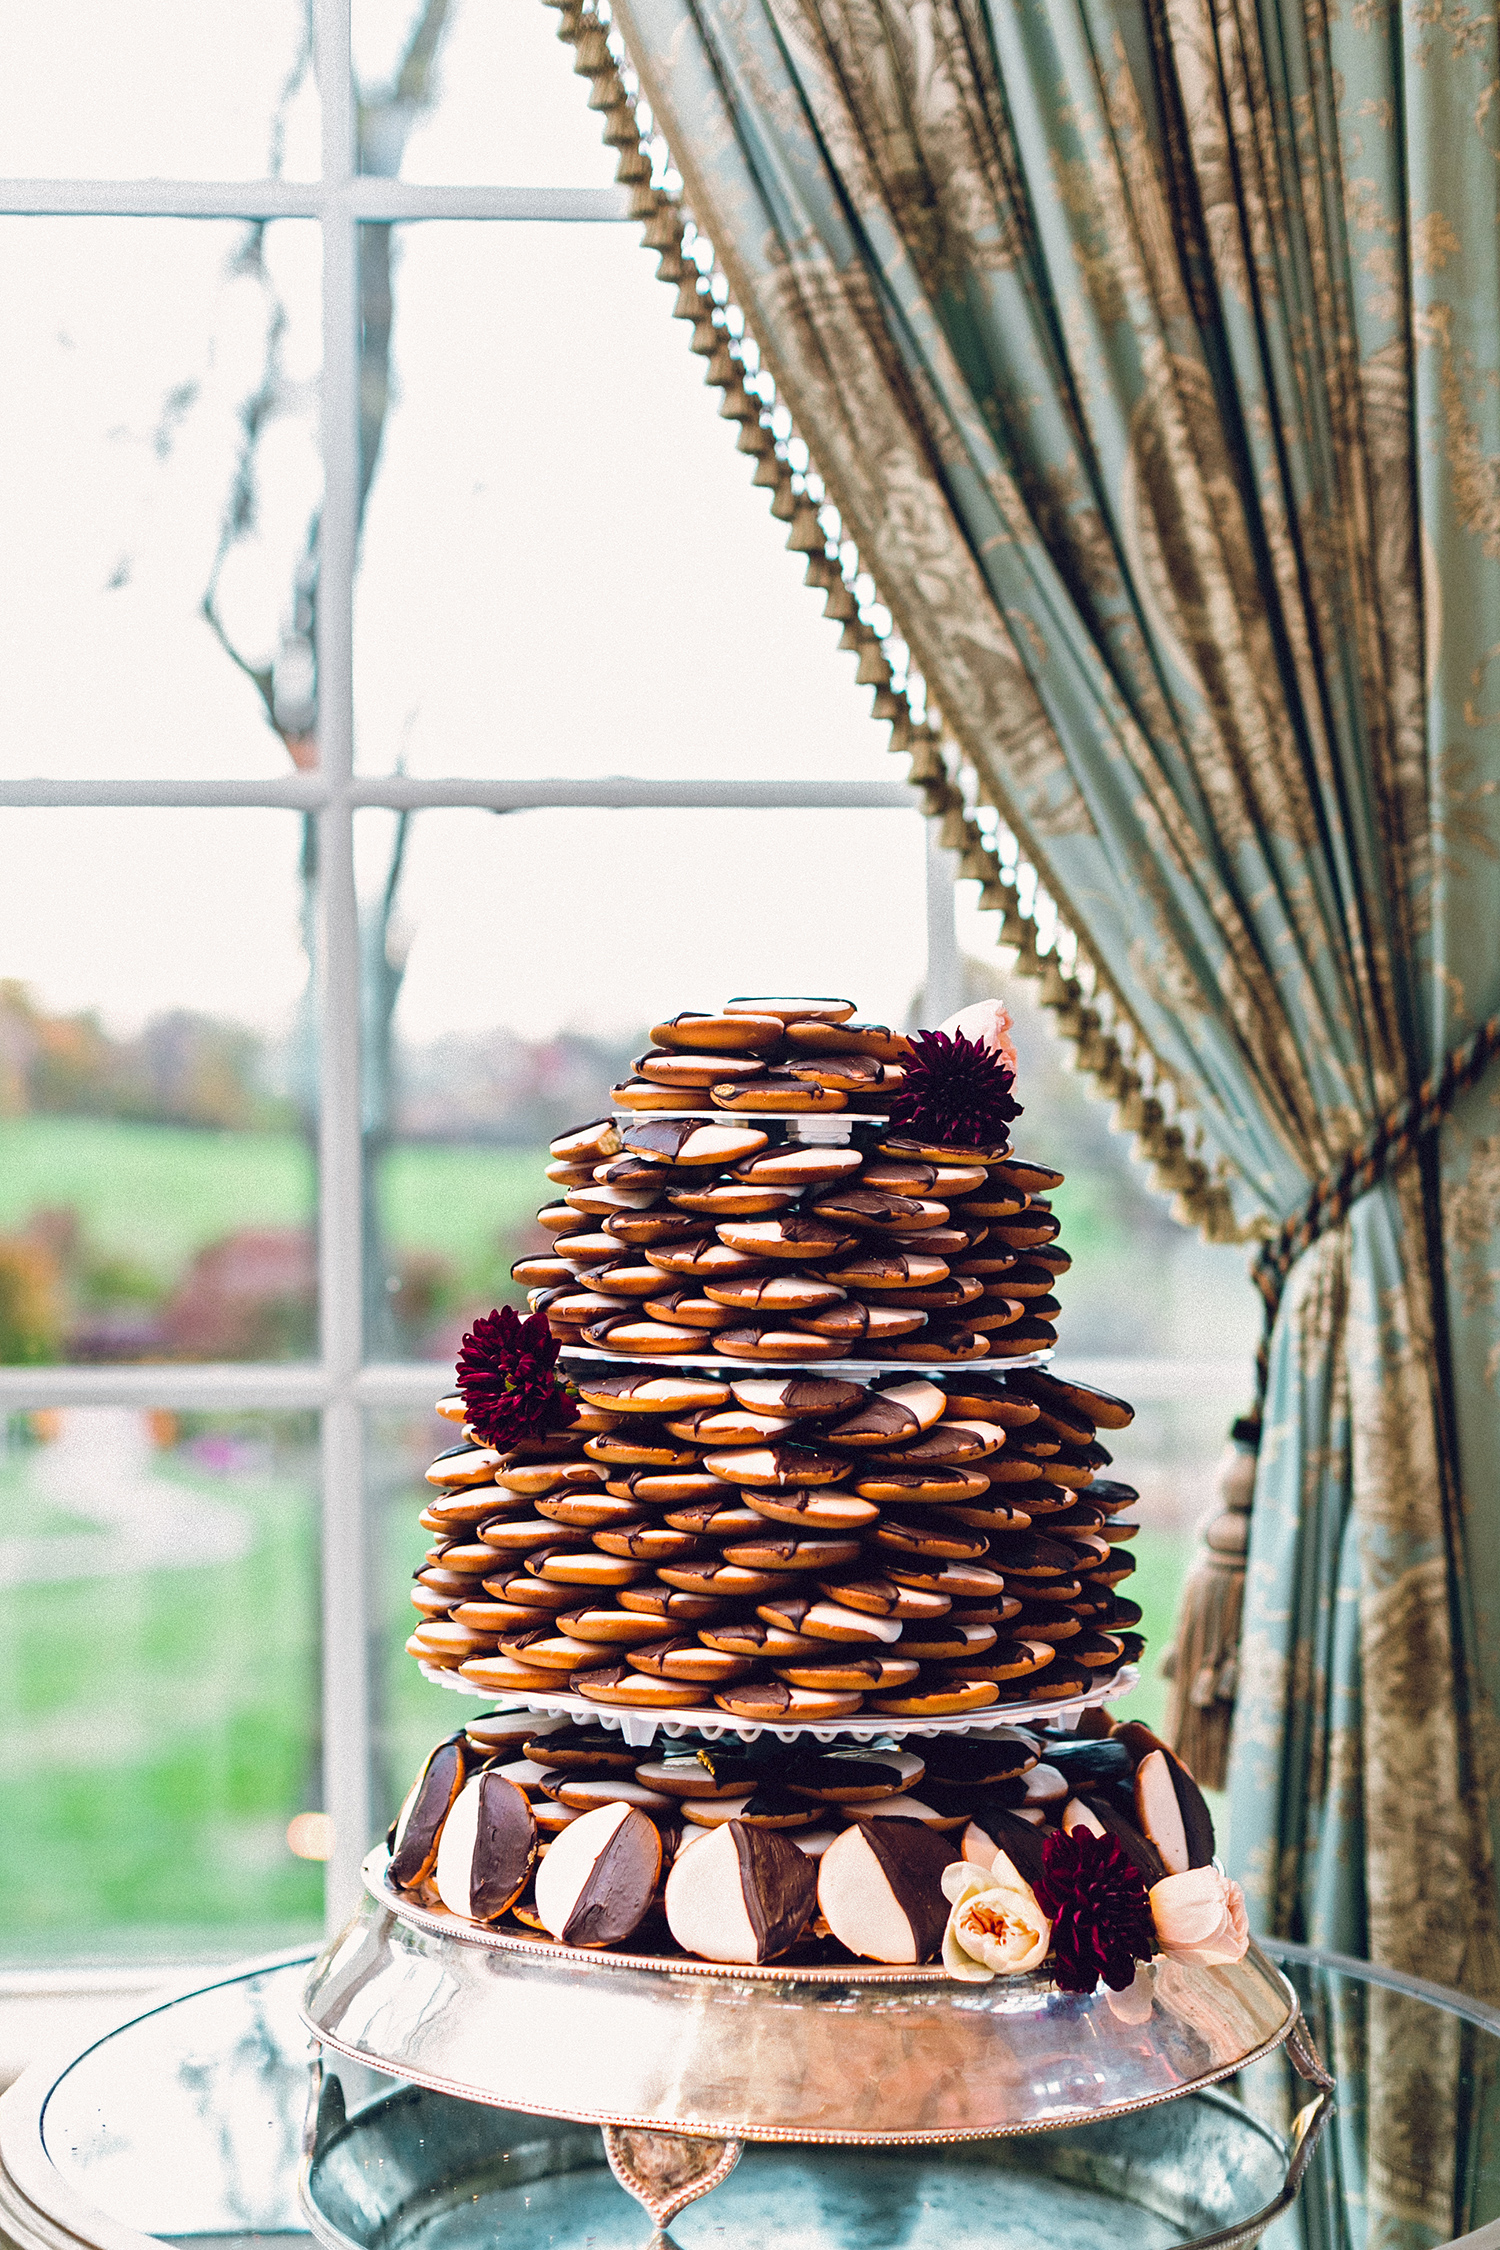 For a destination wedding, serve up a treat that your locale is known for. Black-and-white cookies are a New York City staple; this dessert tower from Joey's would be perfect for a glamorous city affair.